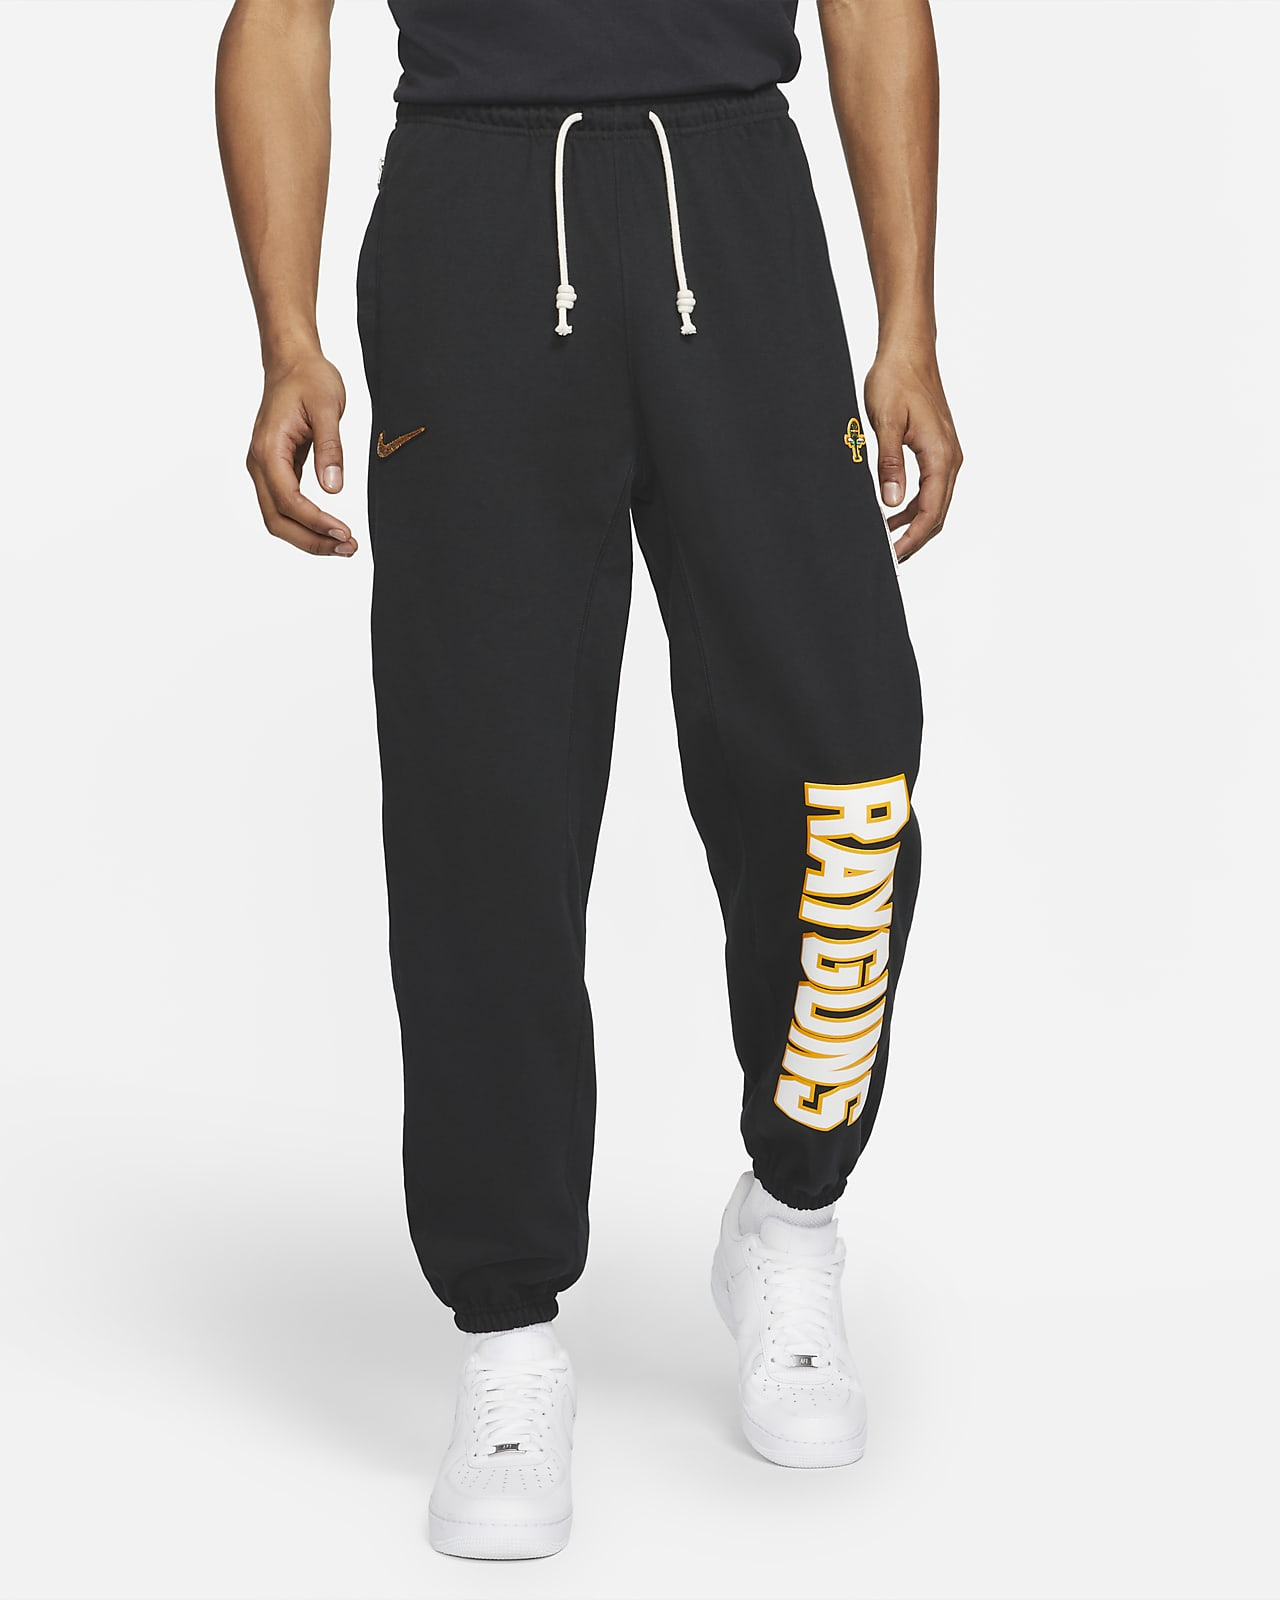 Nike Standard Issue Rayguns Men's Pants